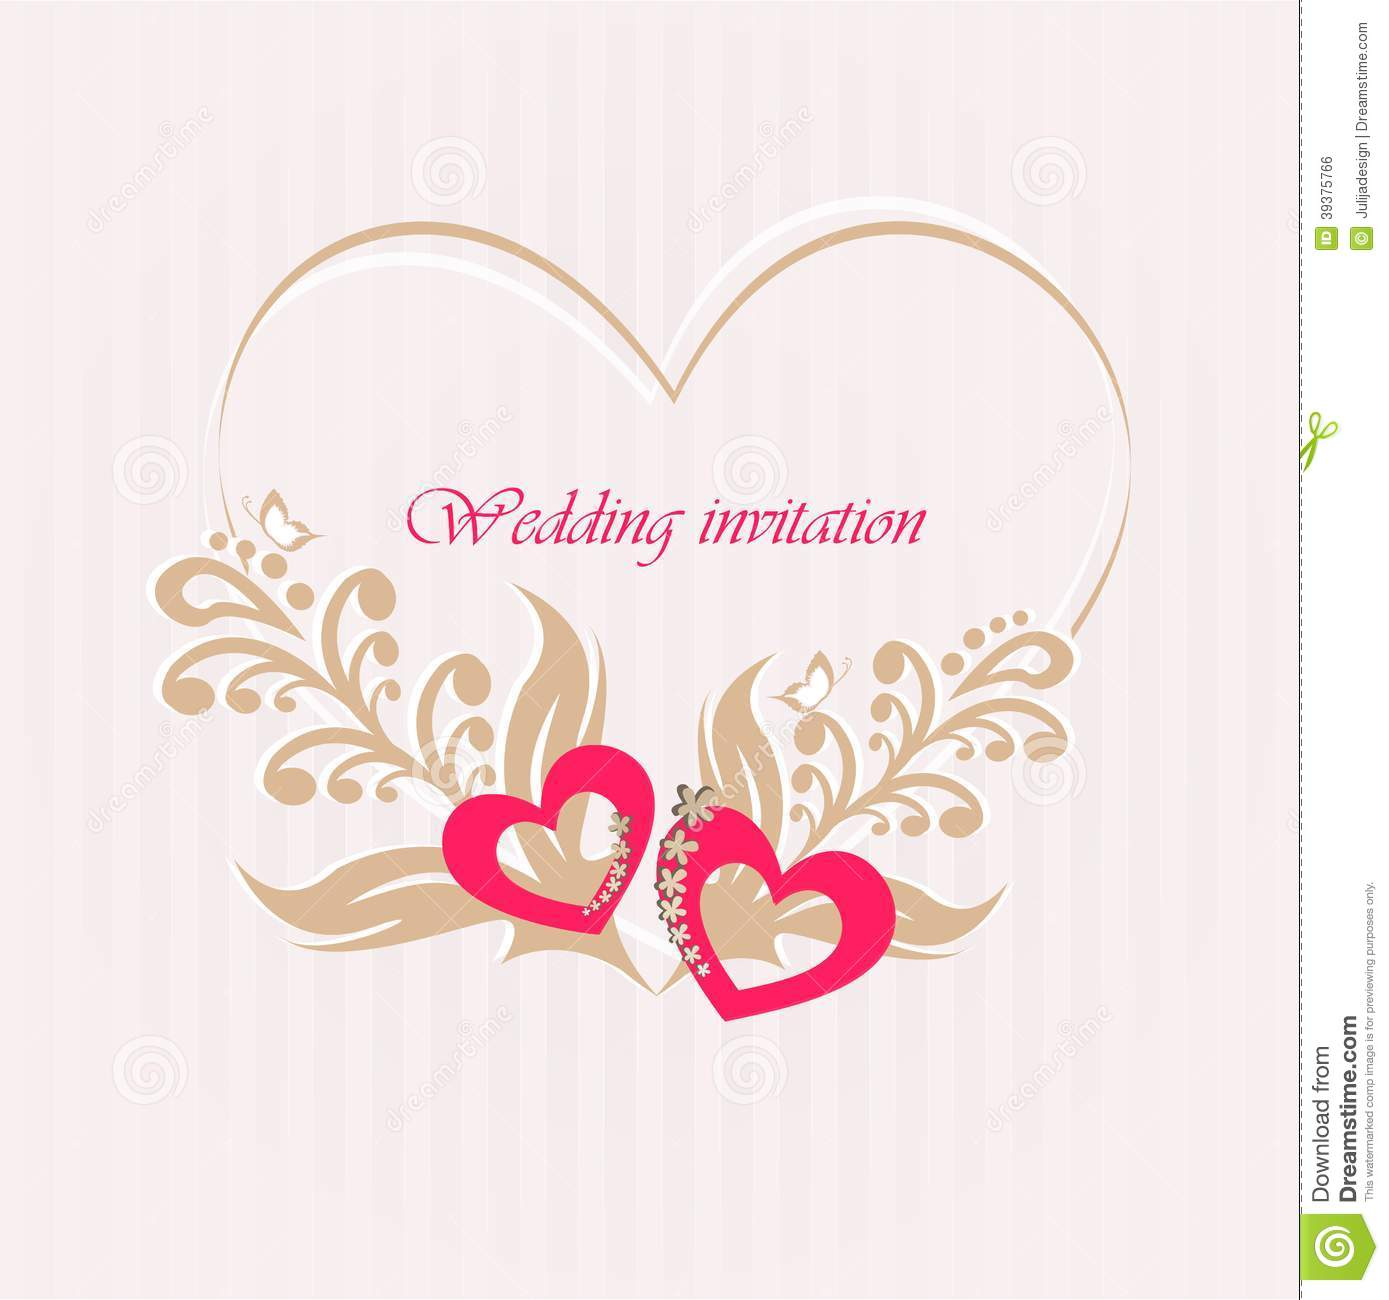 wedding invitation card with decorative hearts stock vector